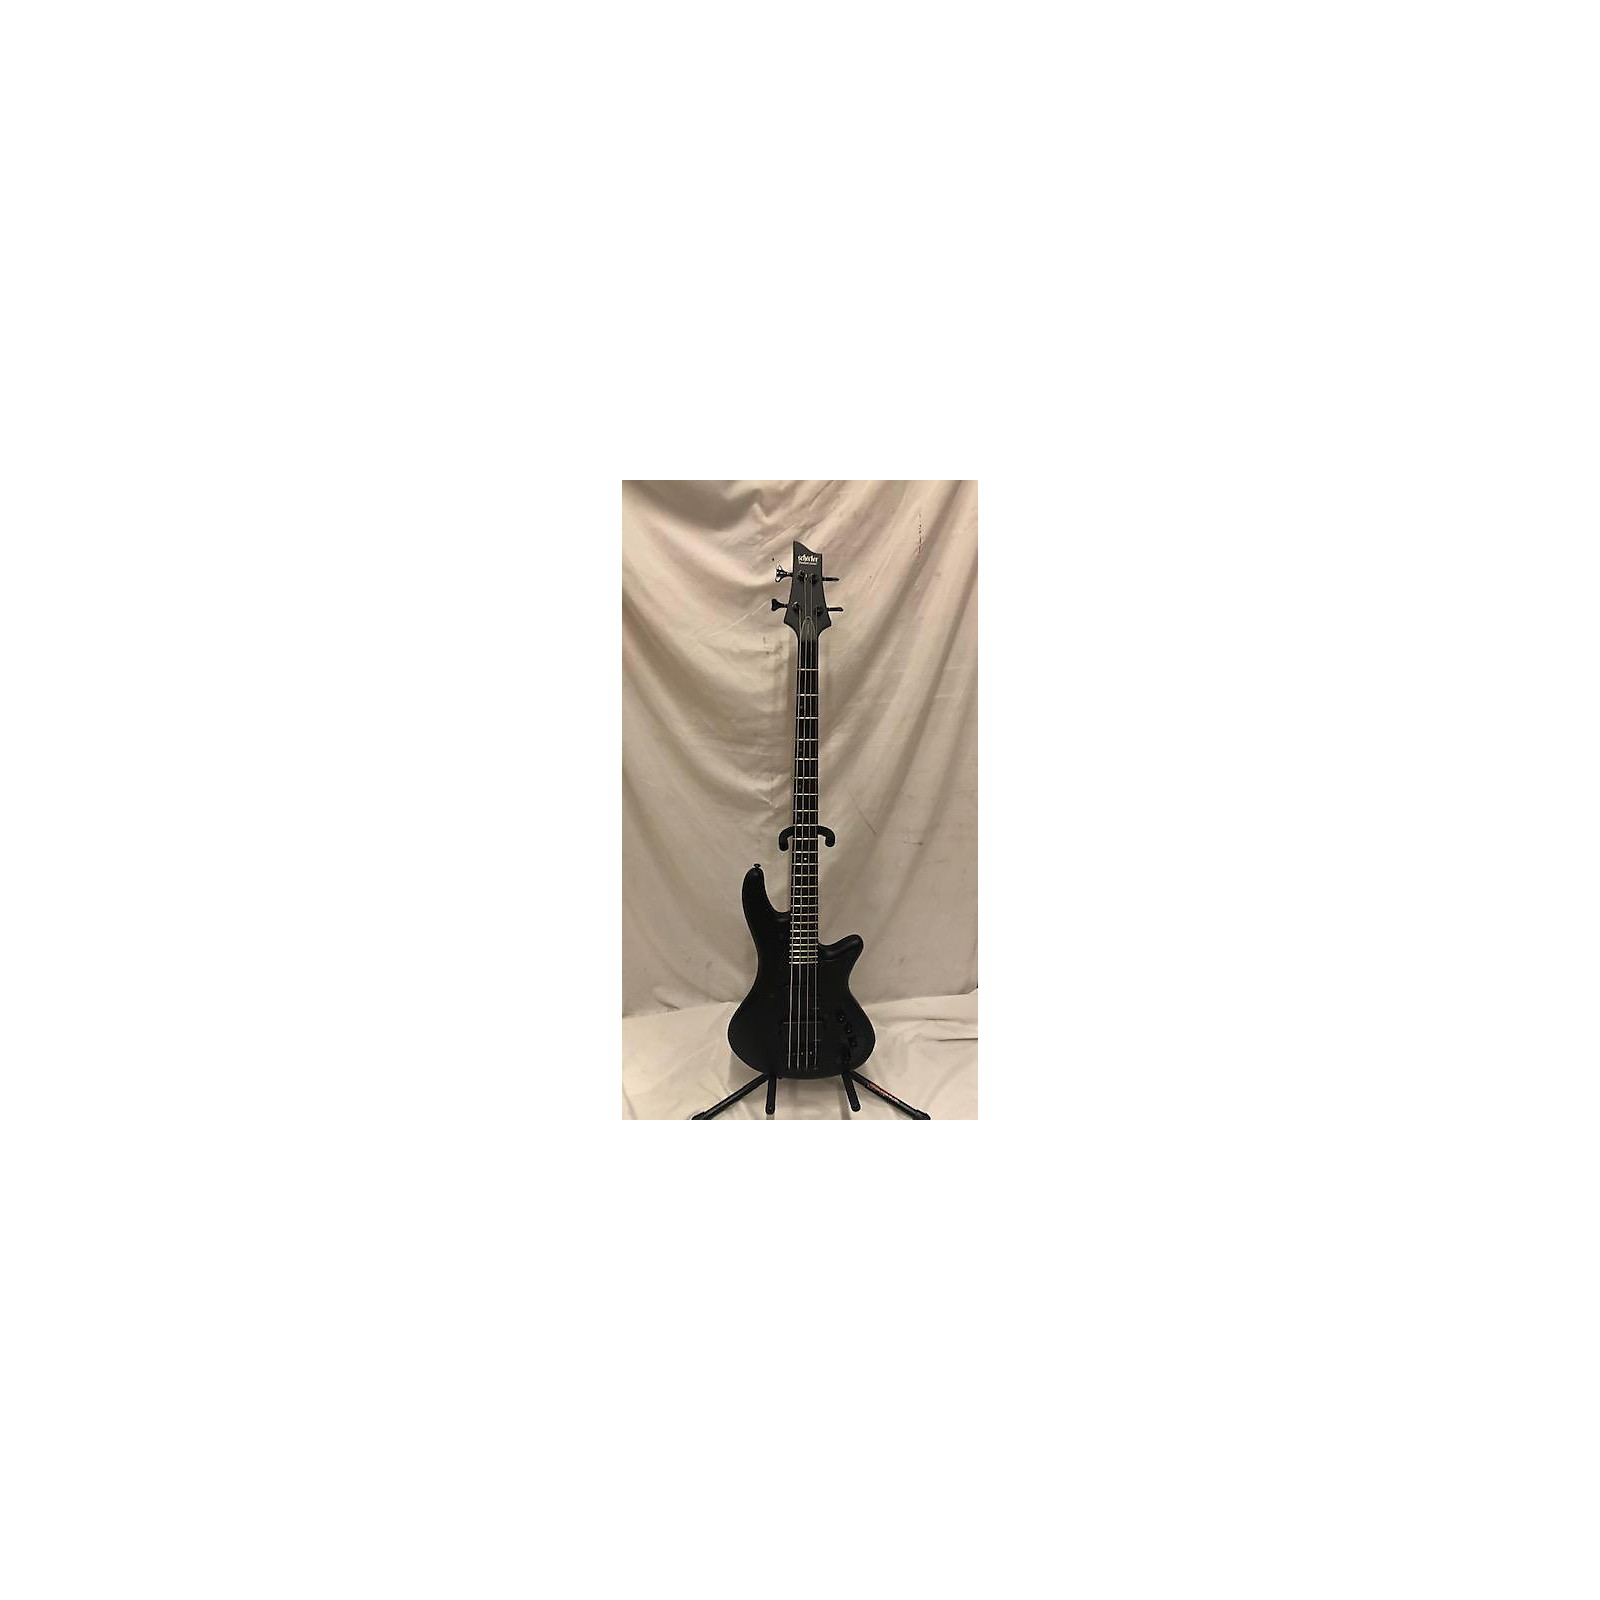 Schecter Guitar Research Stealth 4 Electric Bass Guitar